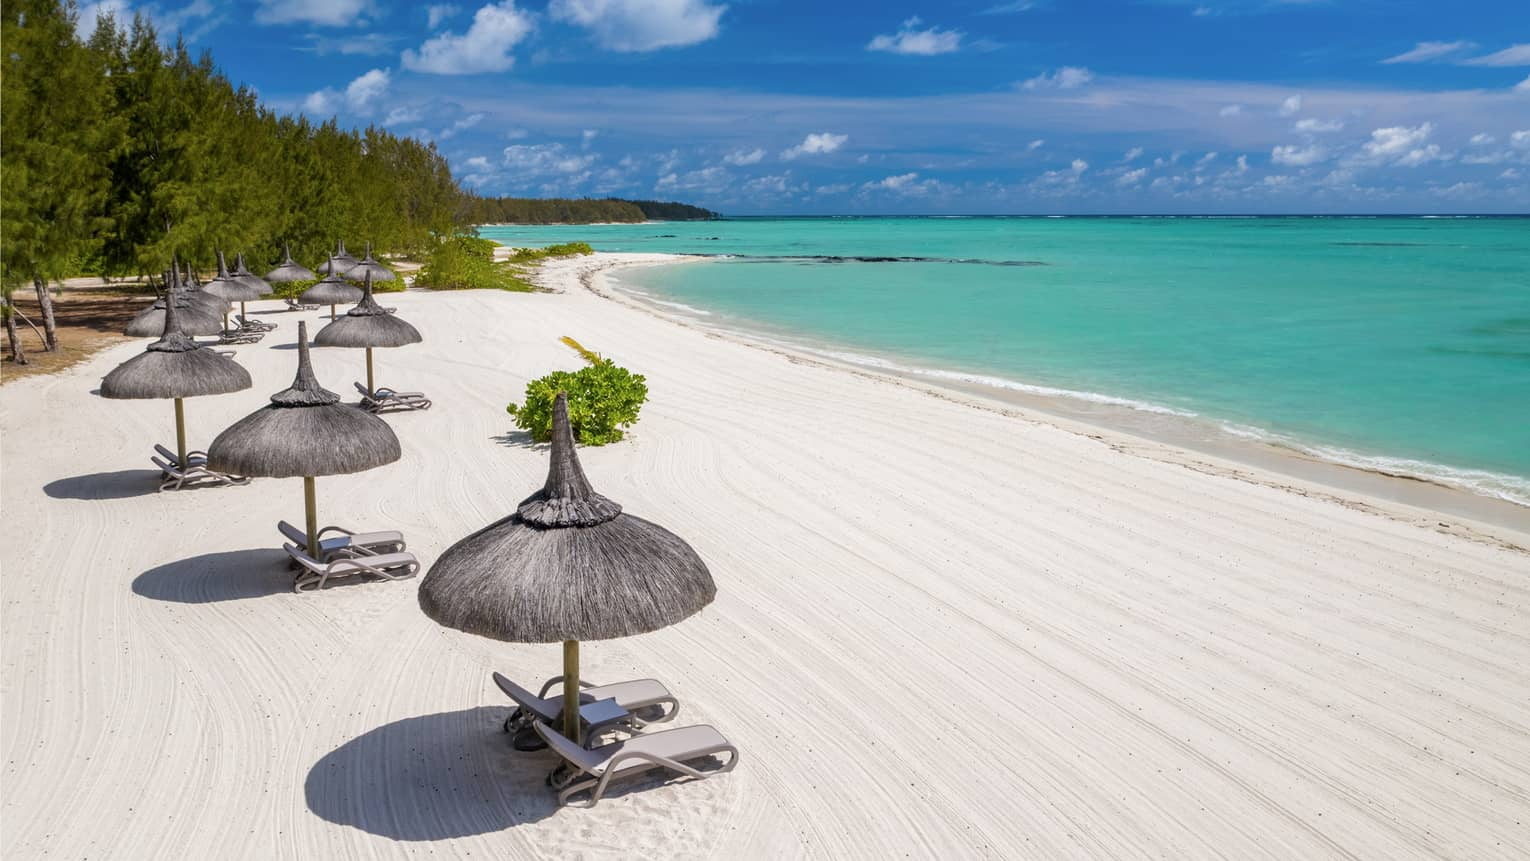 White sand beach with thatched umbrellas and lounge chairs and aqua ocean with blue sky above